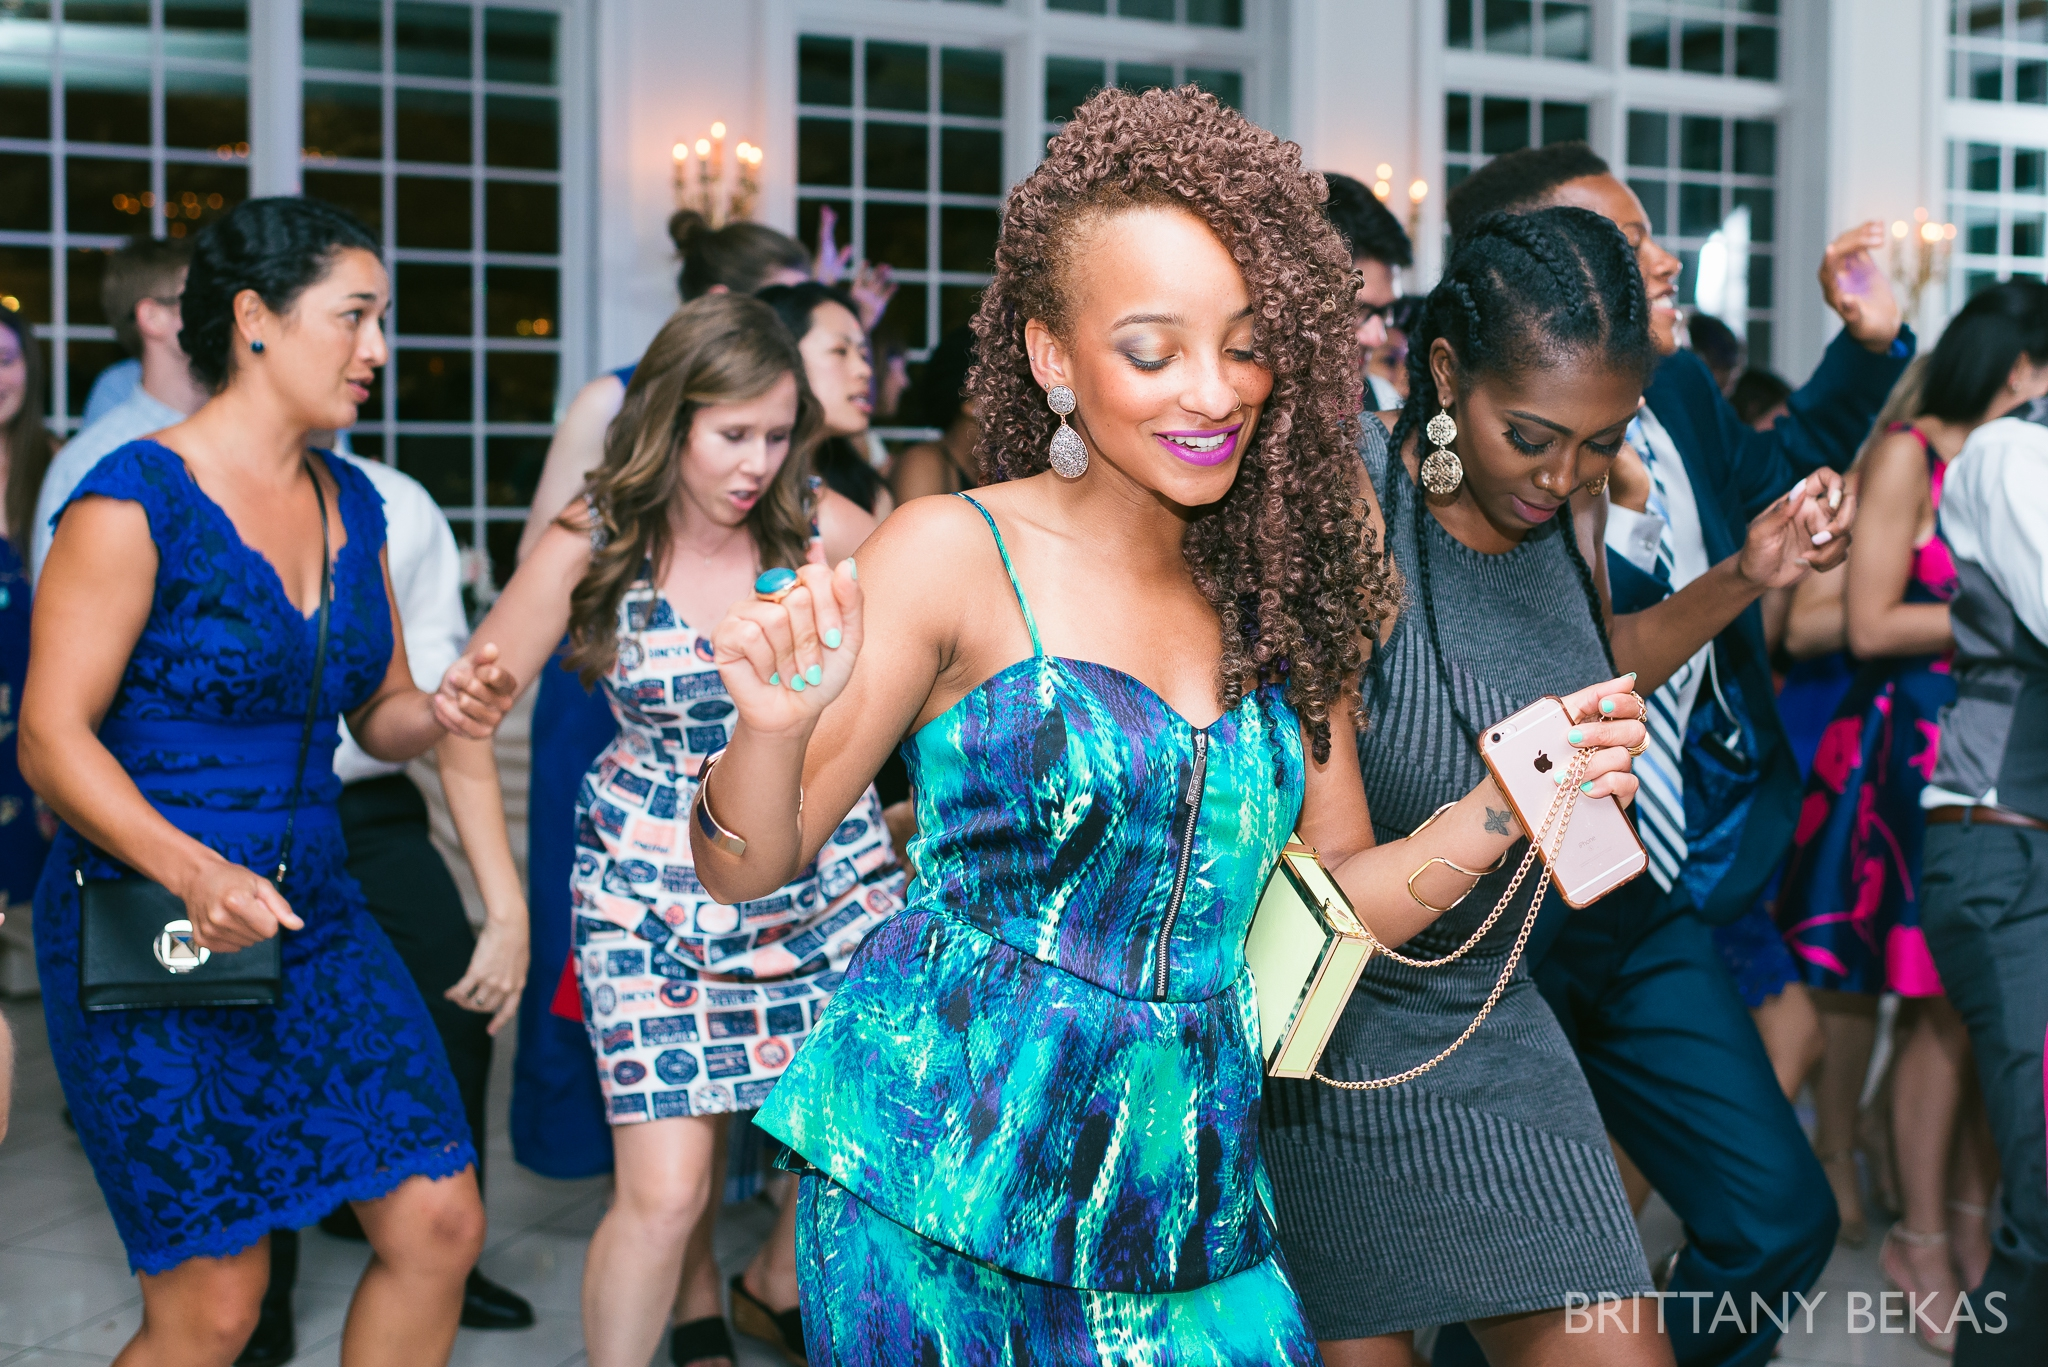 Patrick Haley Mansion Wedding - Brittany Bekas Photography_0040